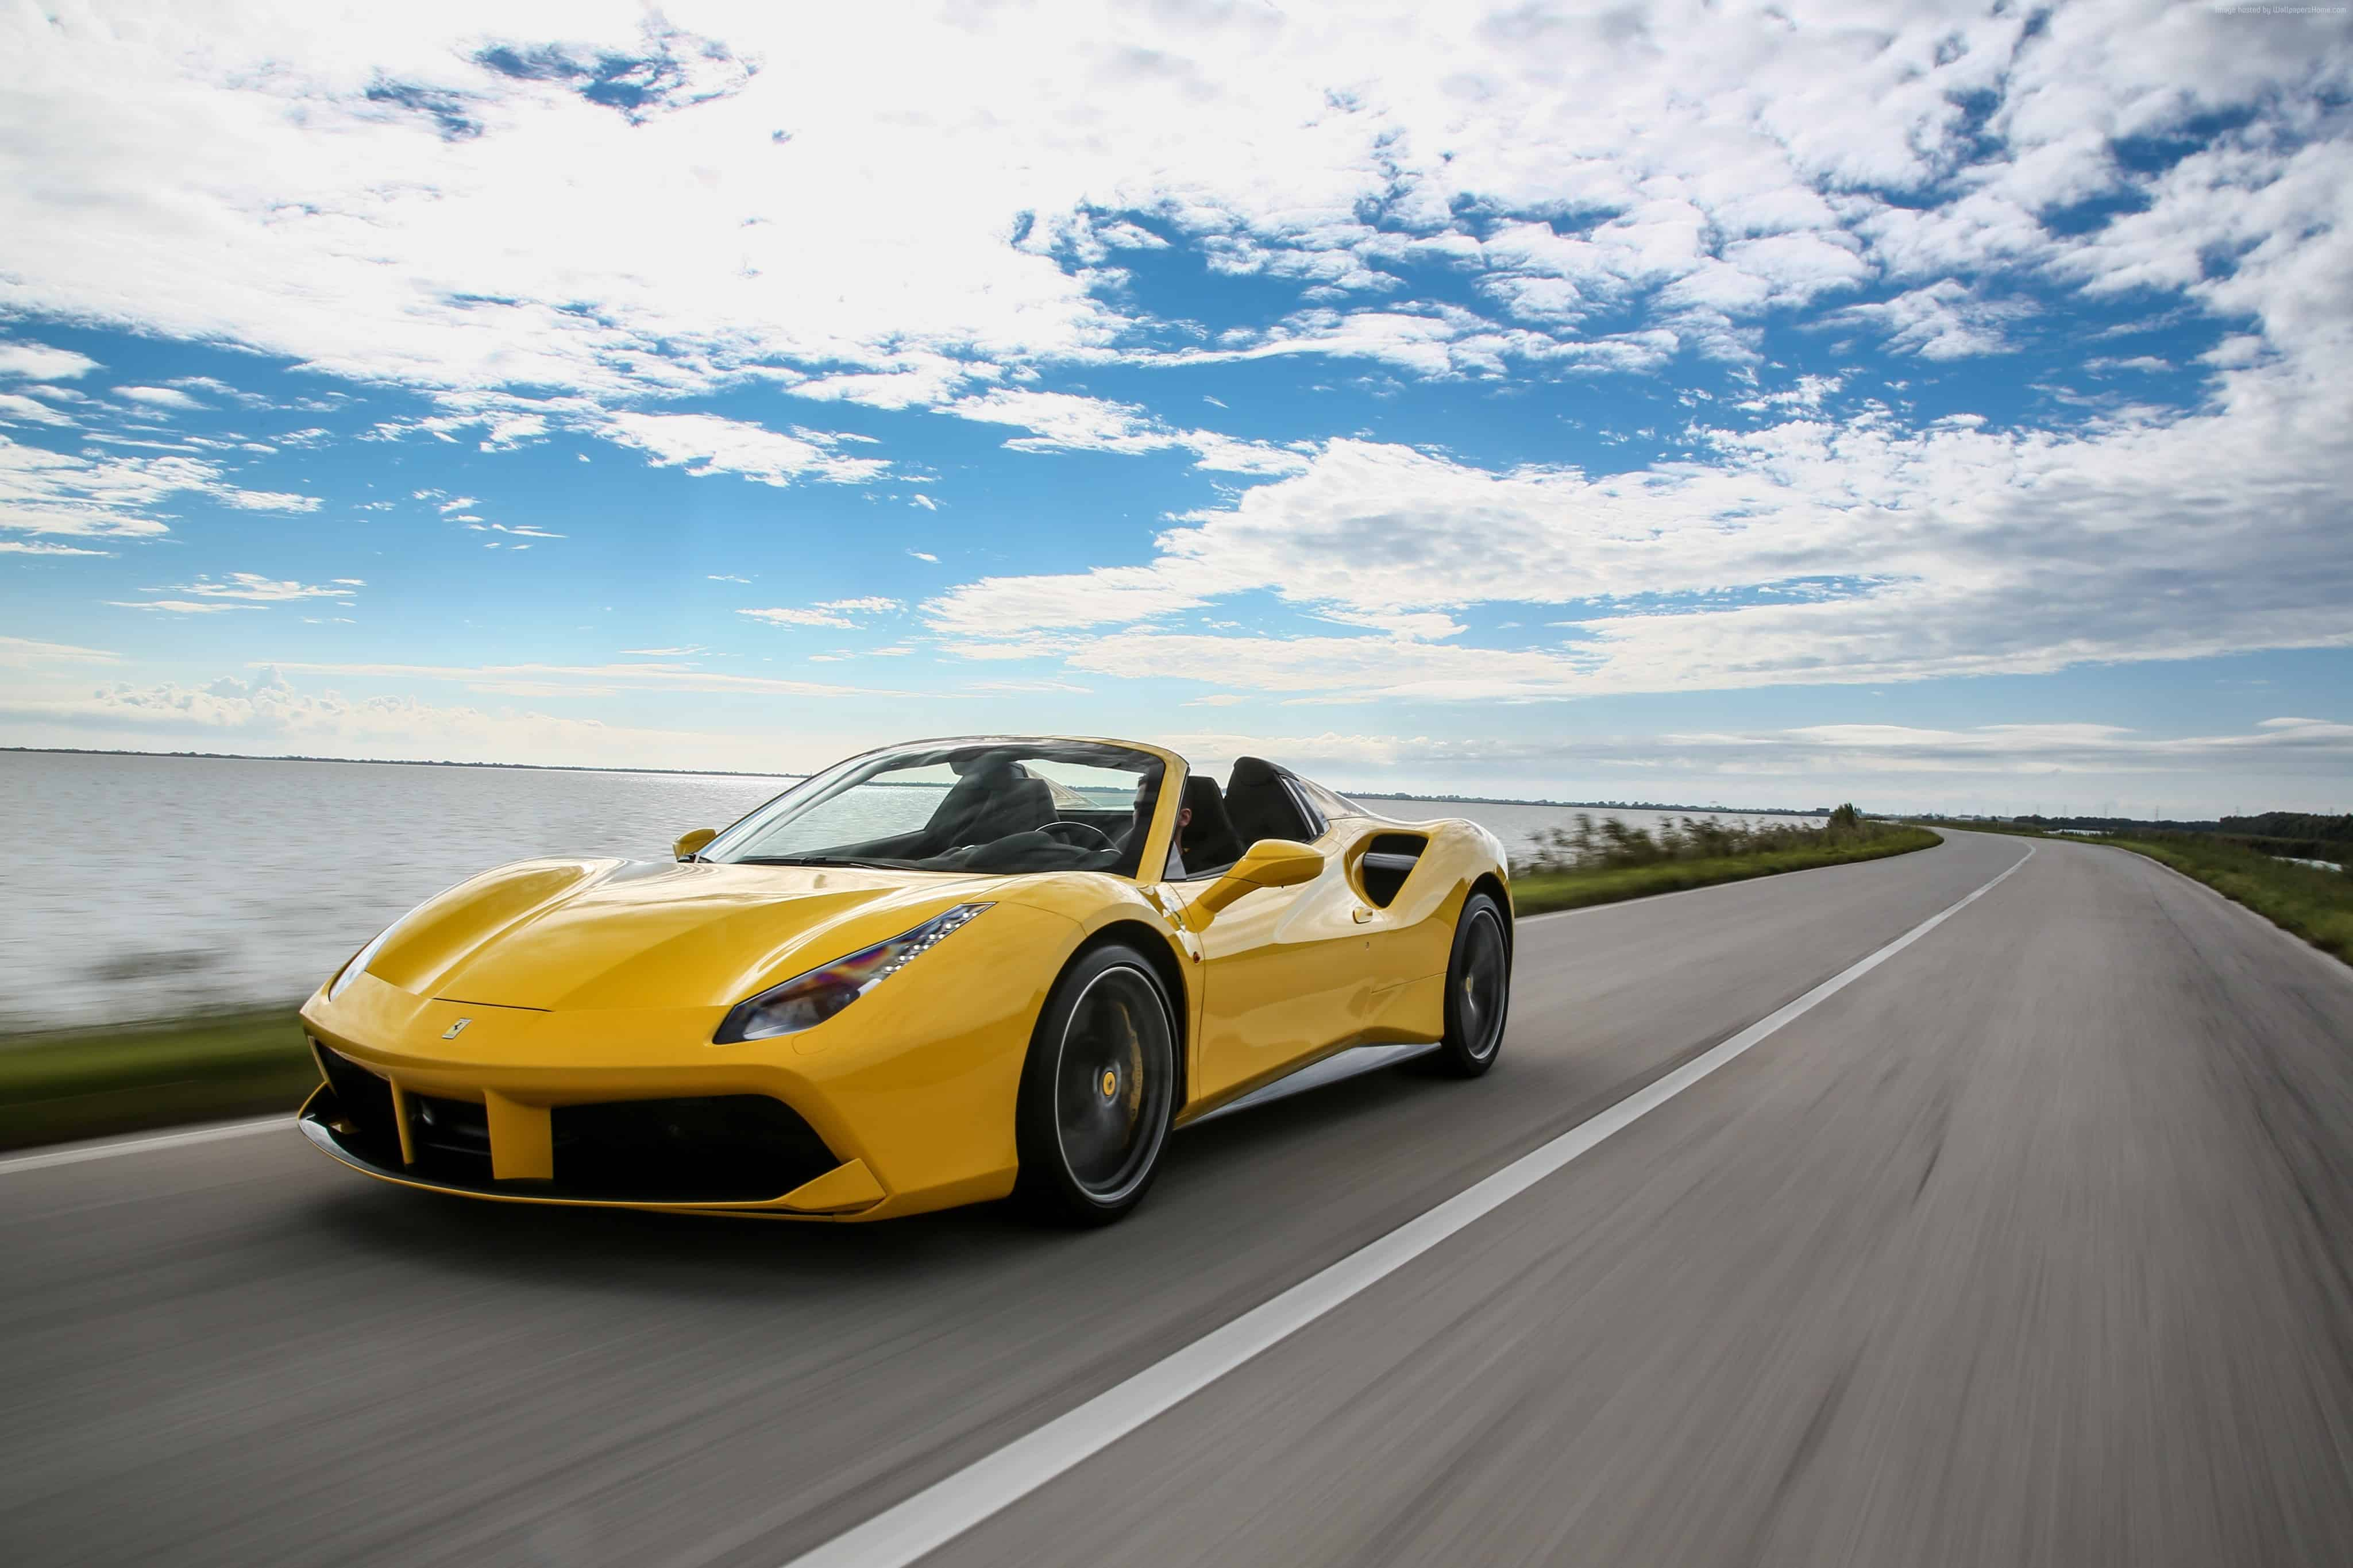 ferrari any california t rosso novitec hire plans rent this summer do supercar luxury italy day in sicily you for yellow have a car